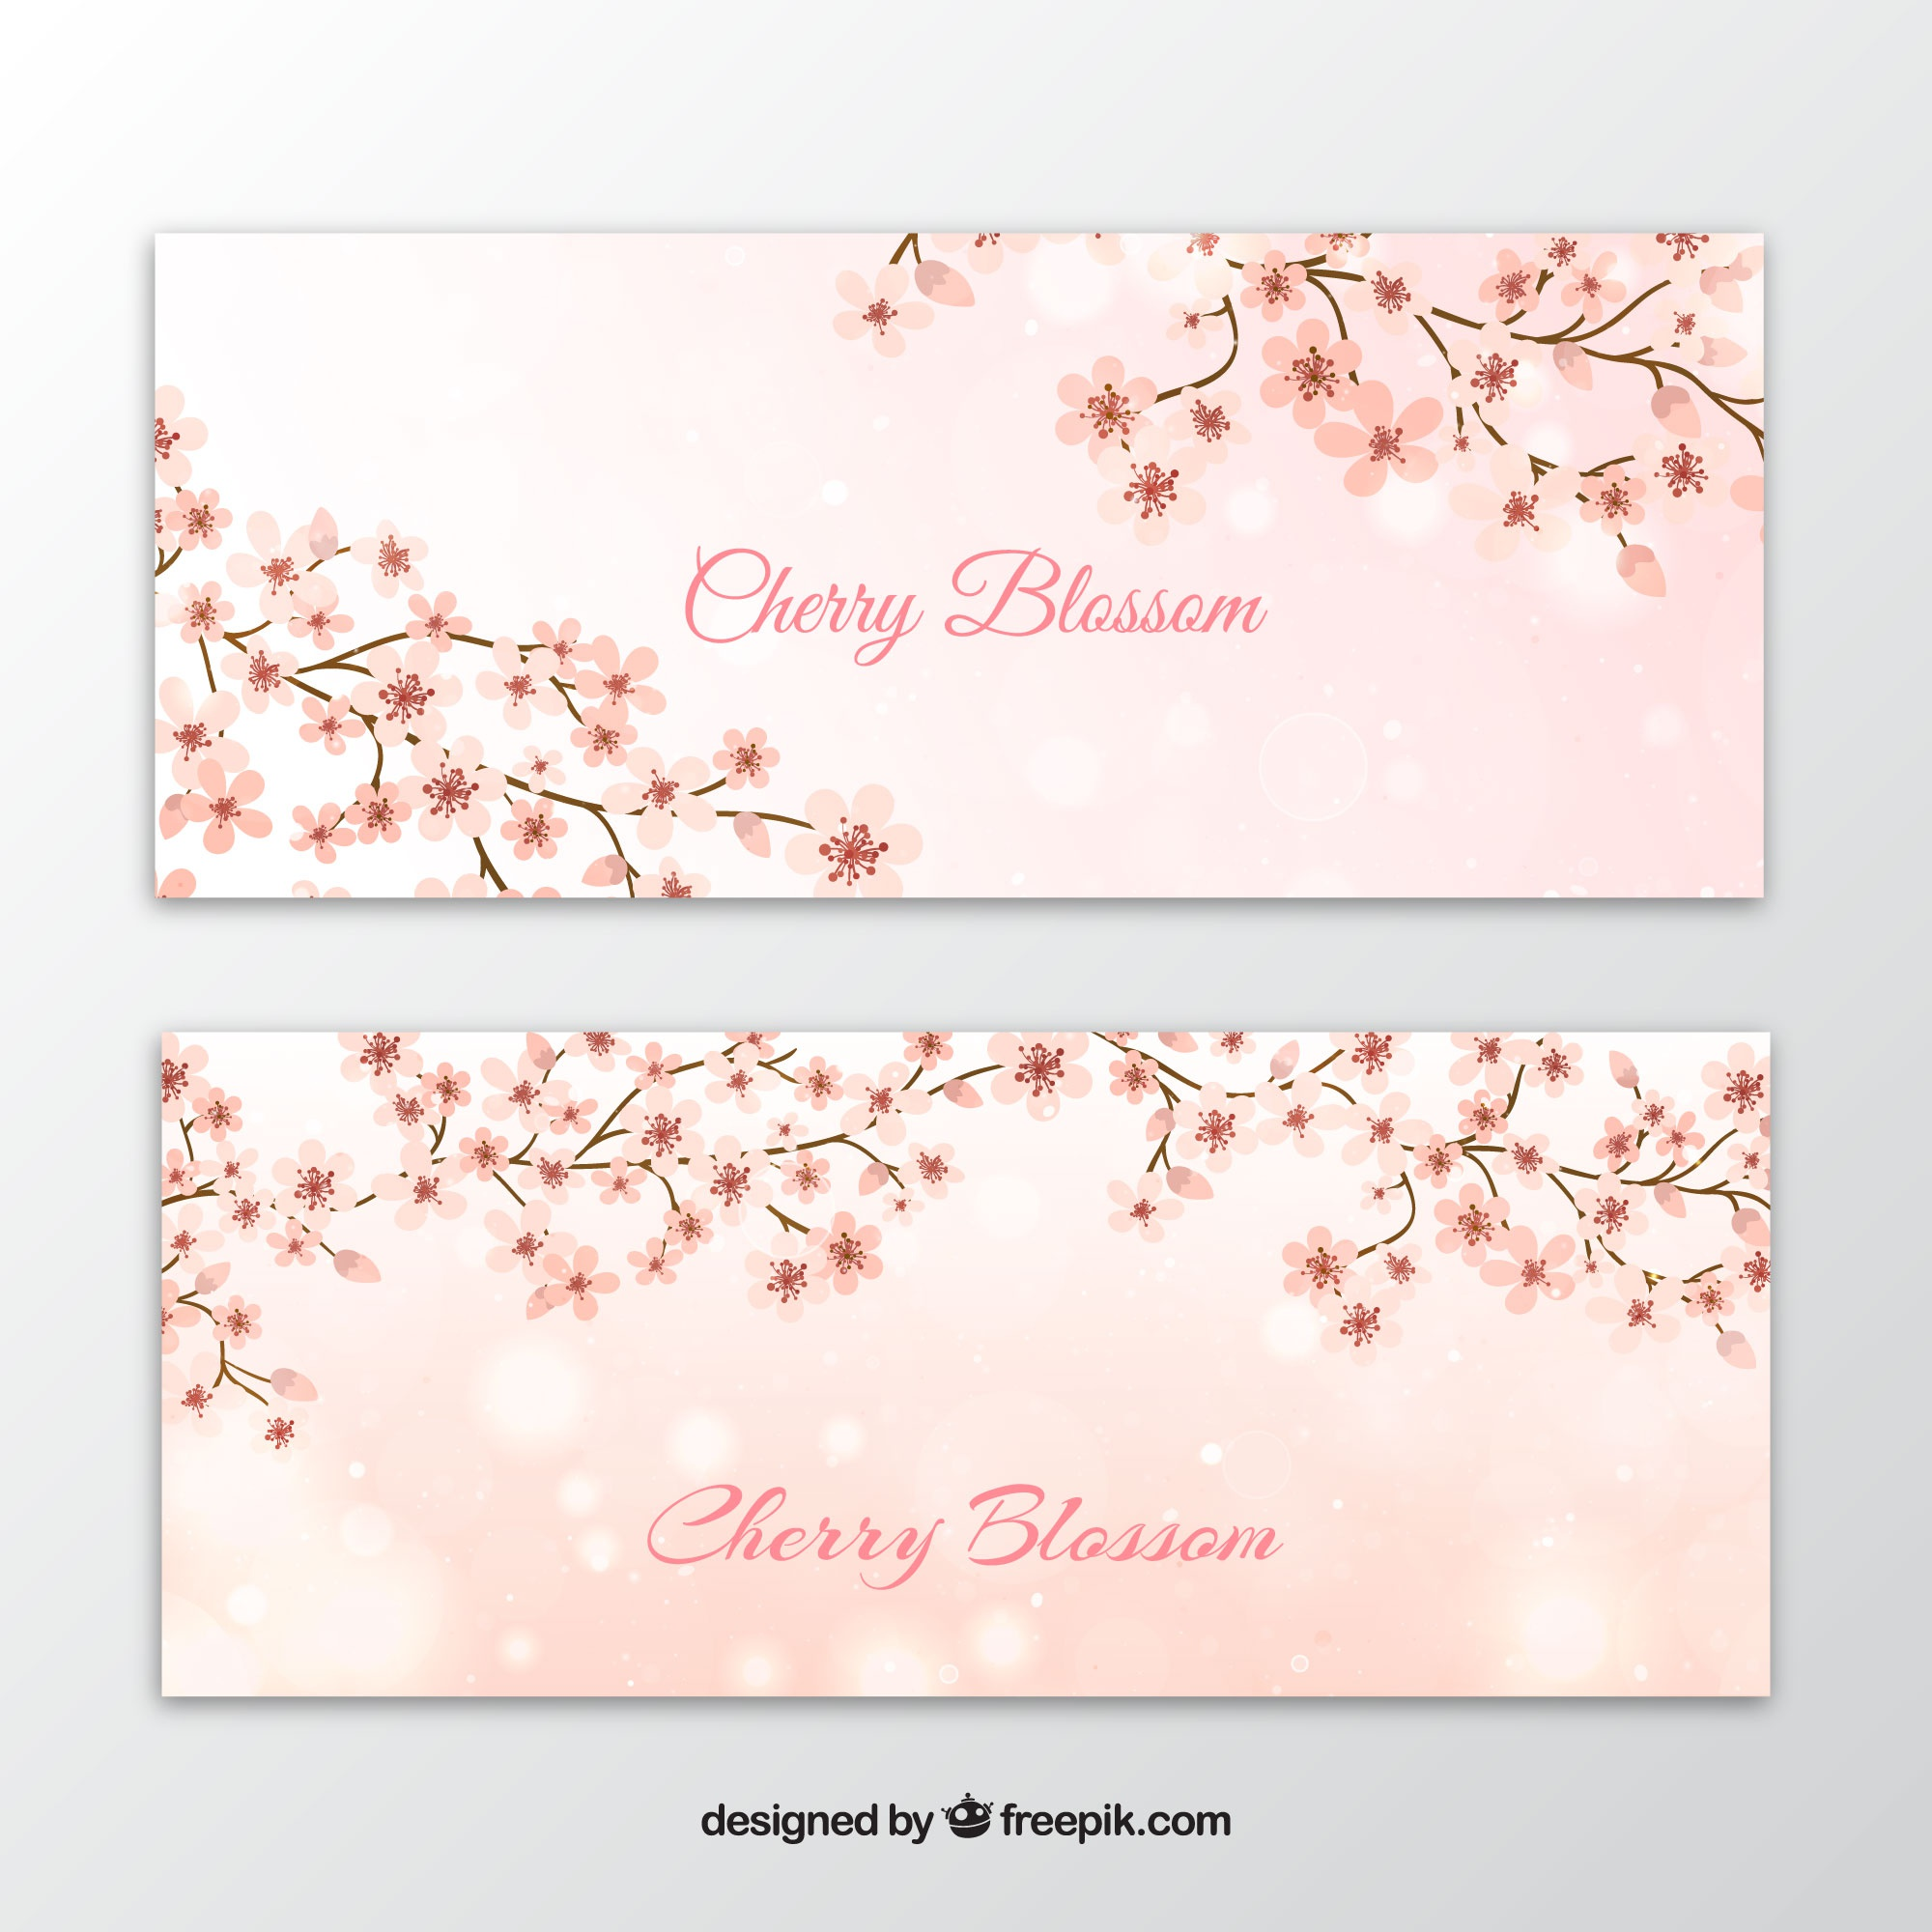 Banners of branches with cherry blossoms